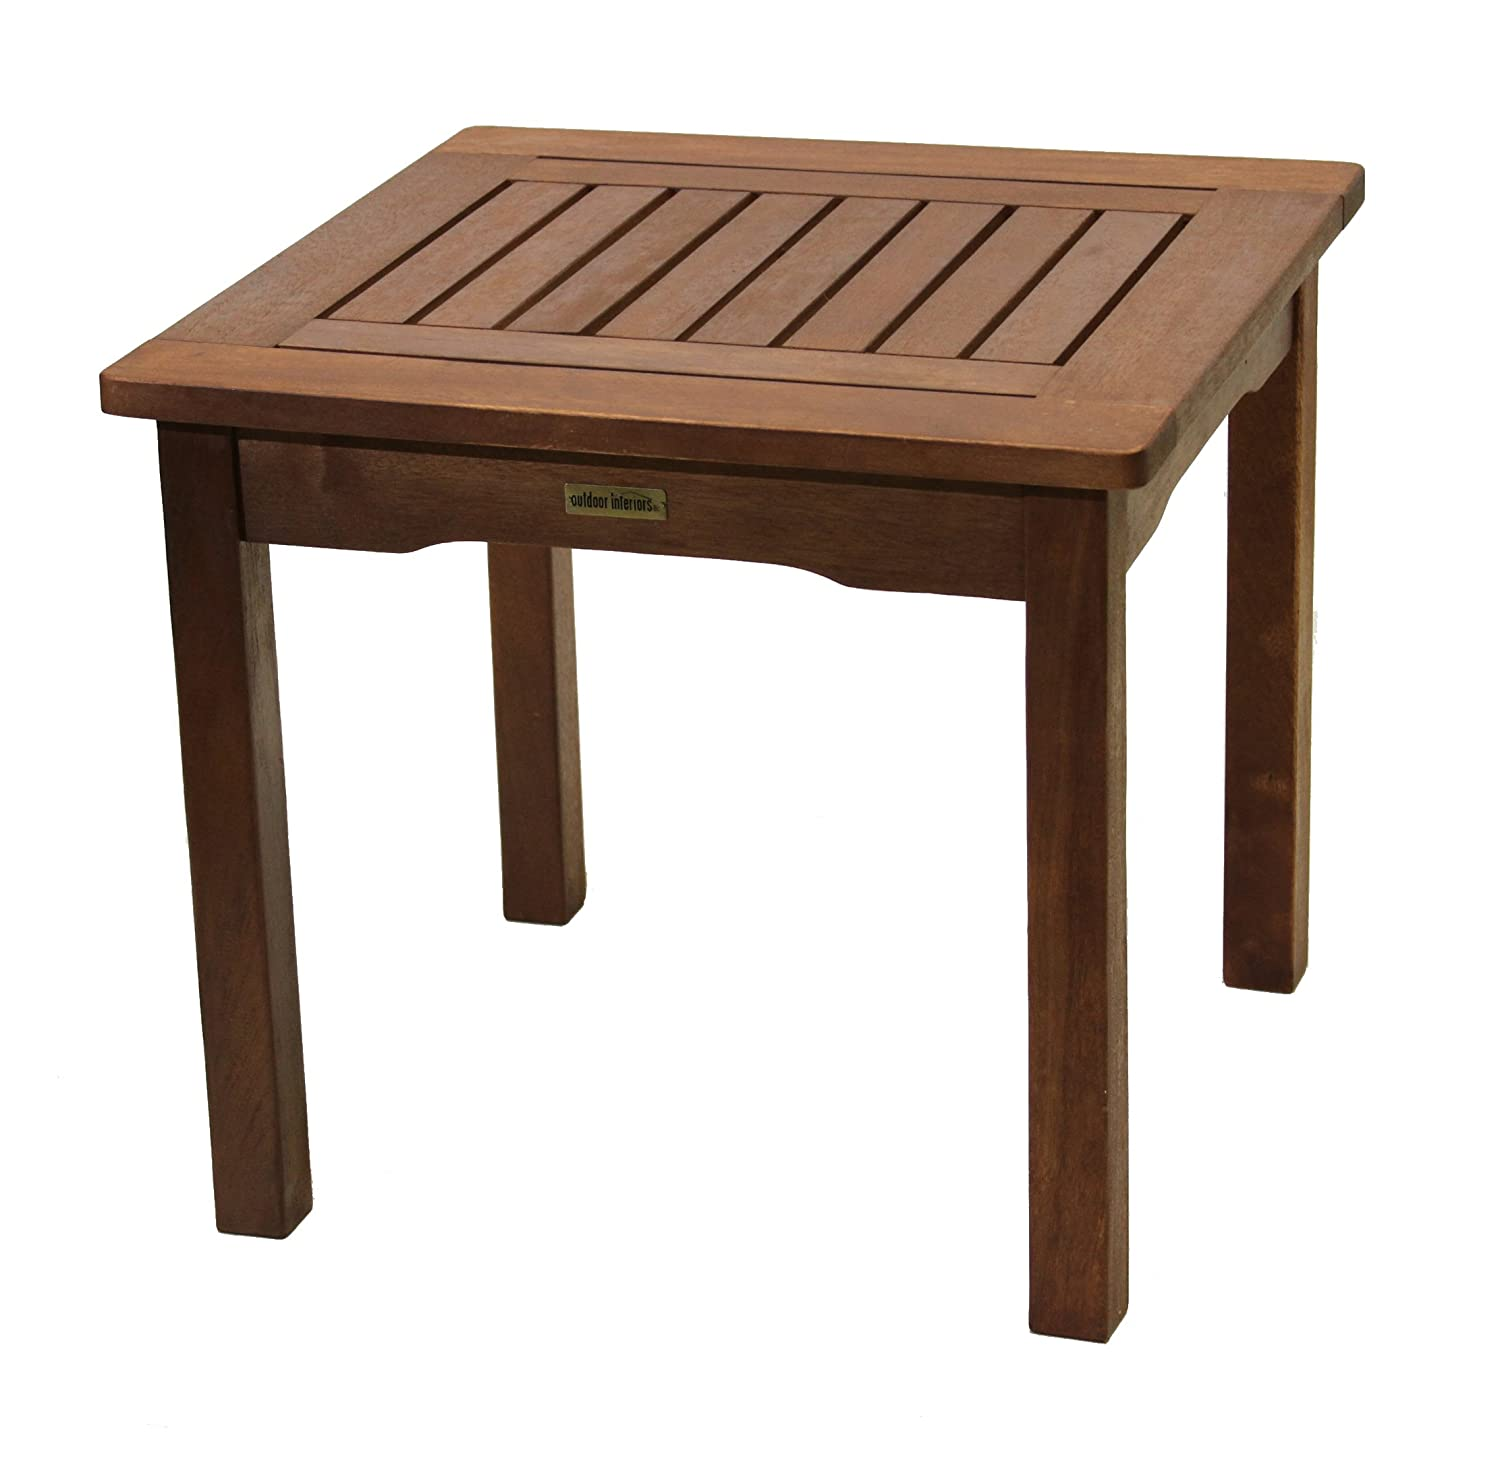 Details about All Weather End Table Eucalyptus Easy Assembly Garden ...